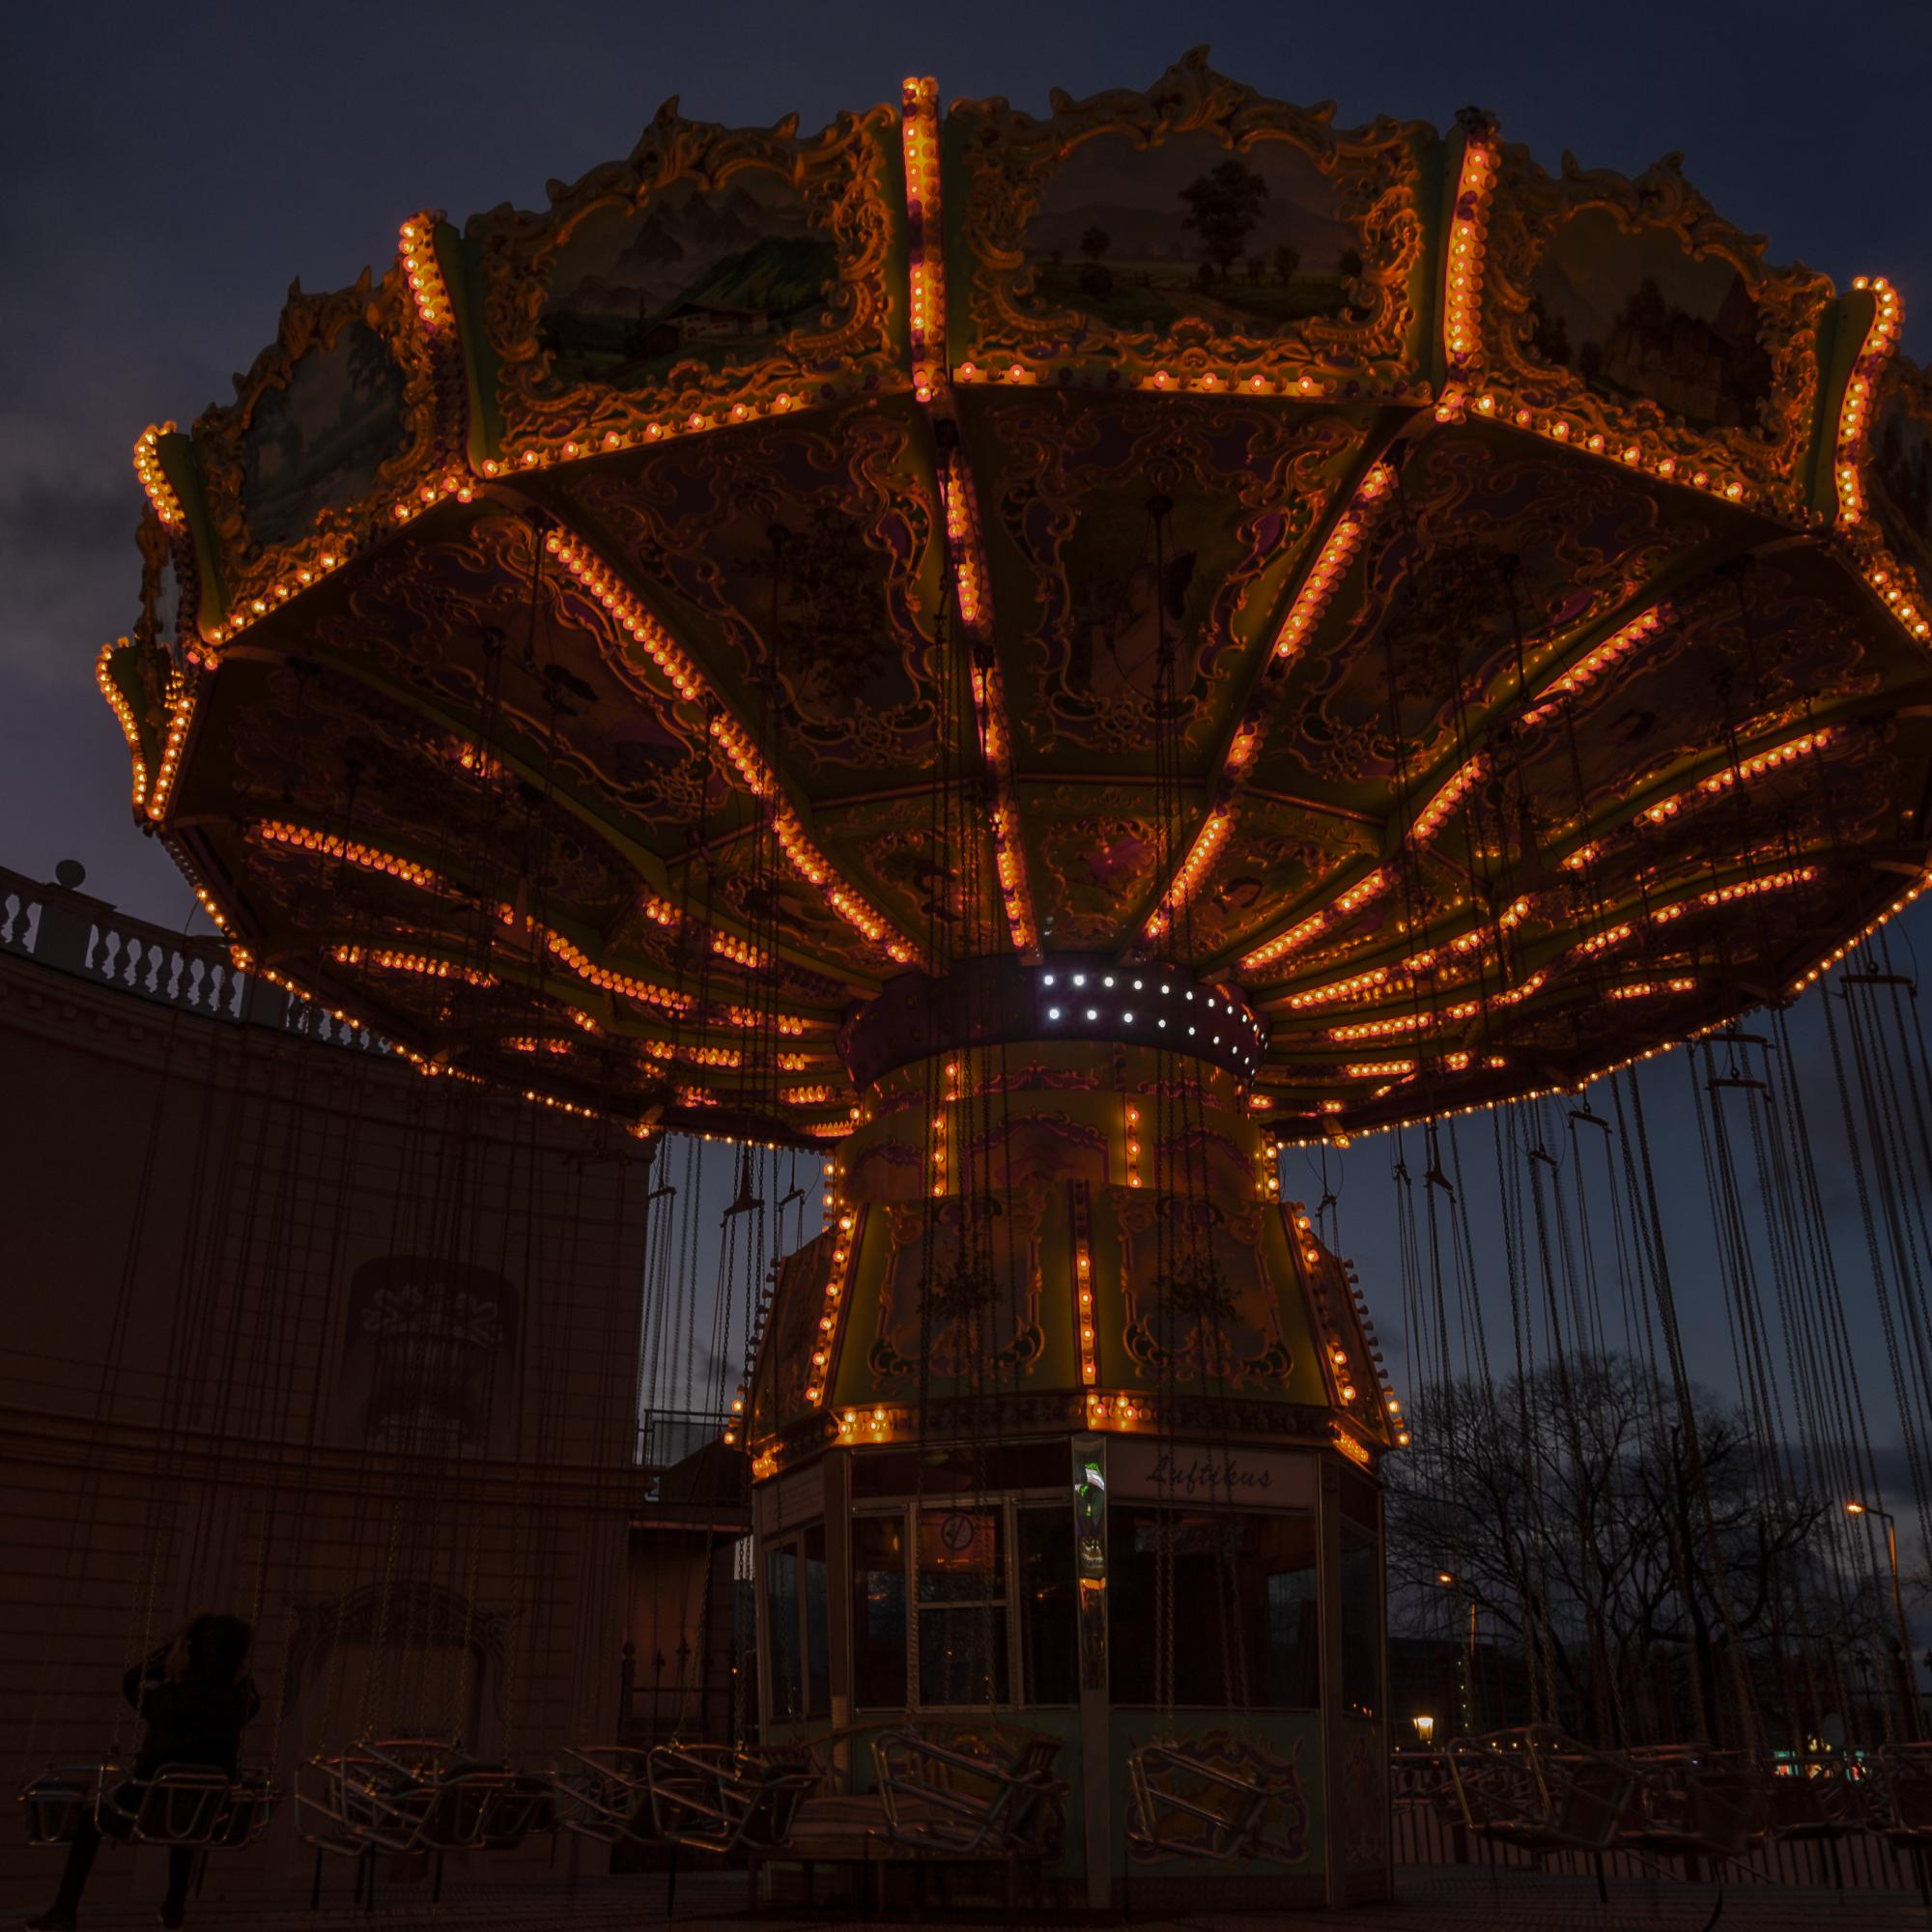 at the Prater in vienna